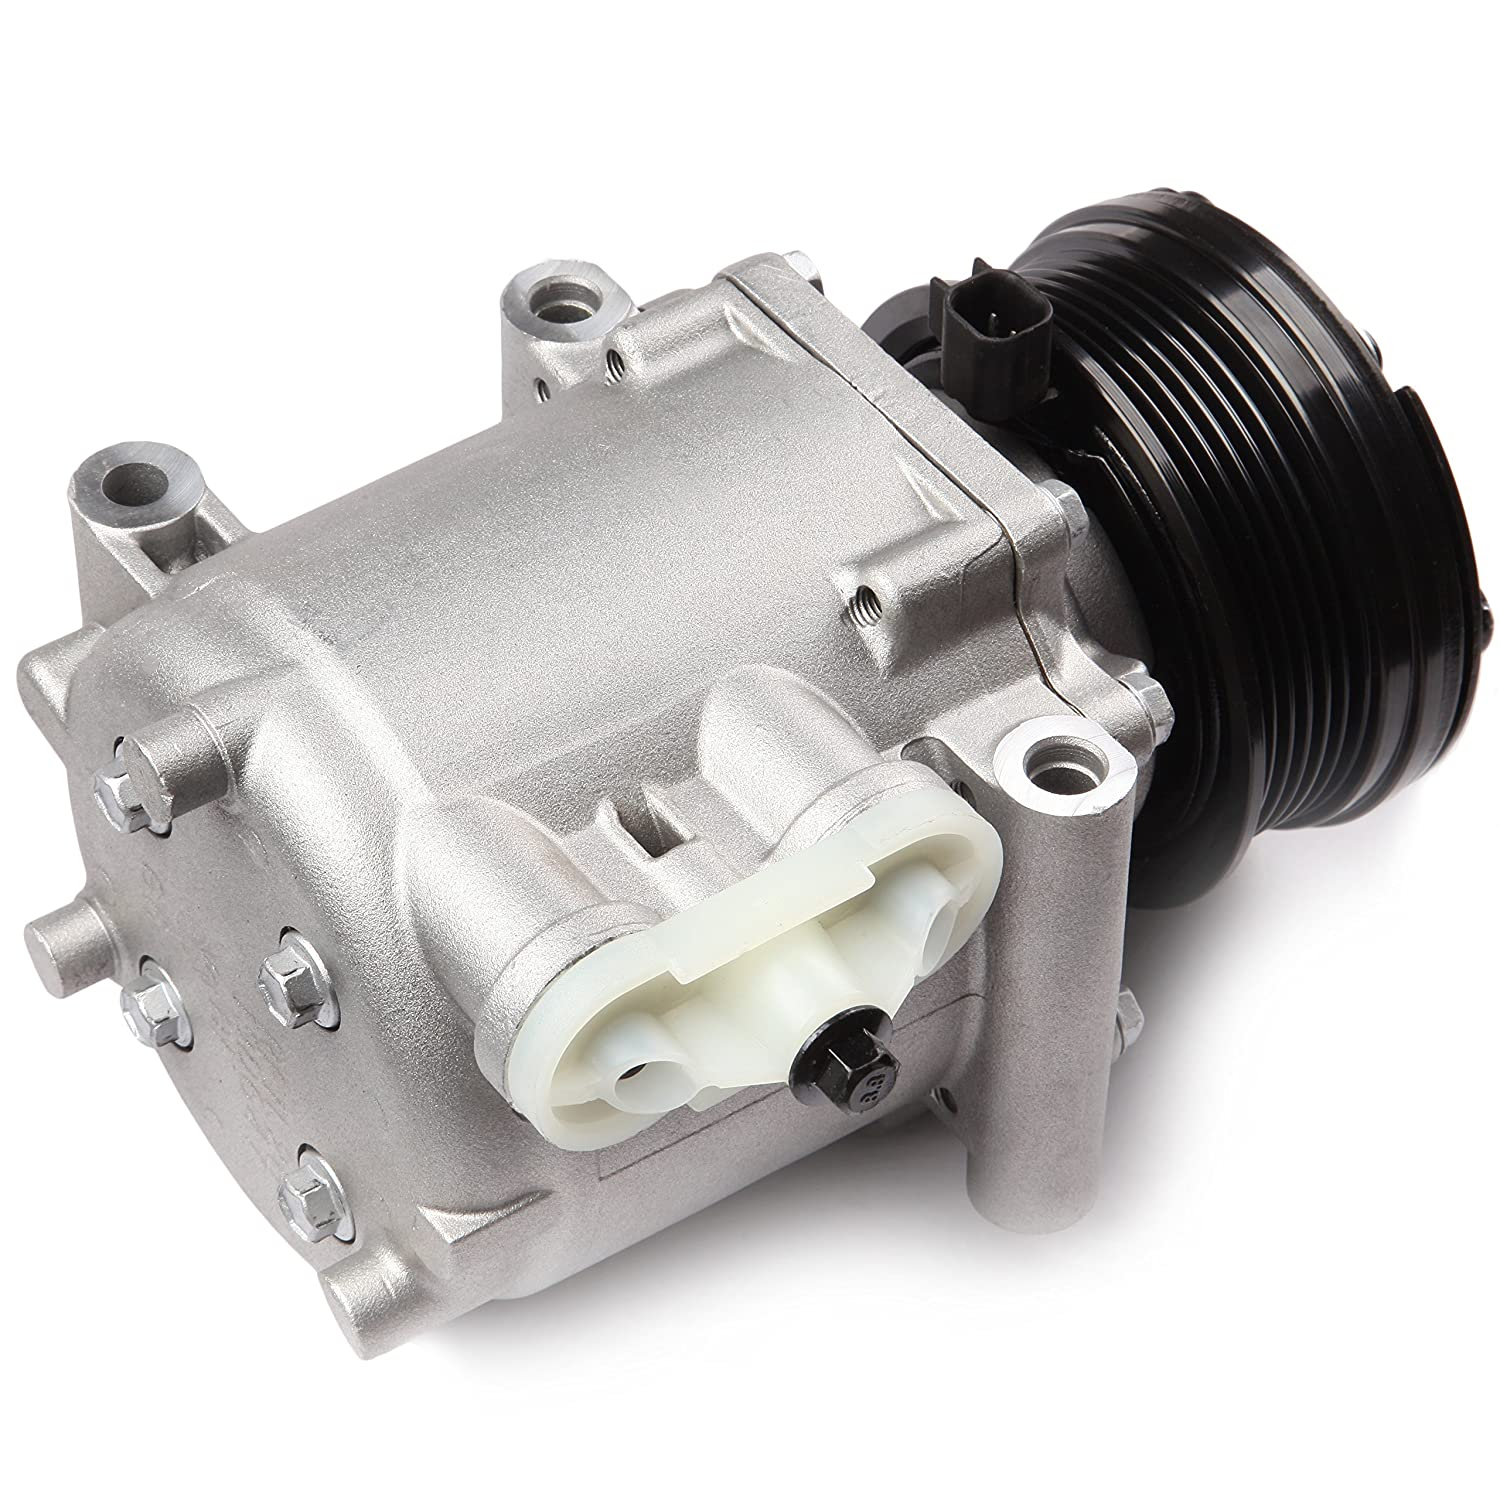 ECCPP Compatible fit for A//C Compressor Clutches CO 102580AC for 2002-2005 Mercury Mountaineer Ford Explorer V6 4.0L Car Air AC Compressors